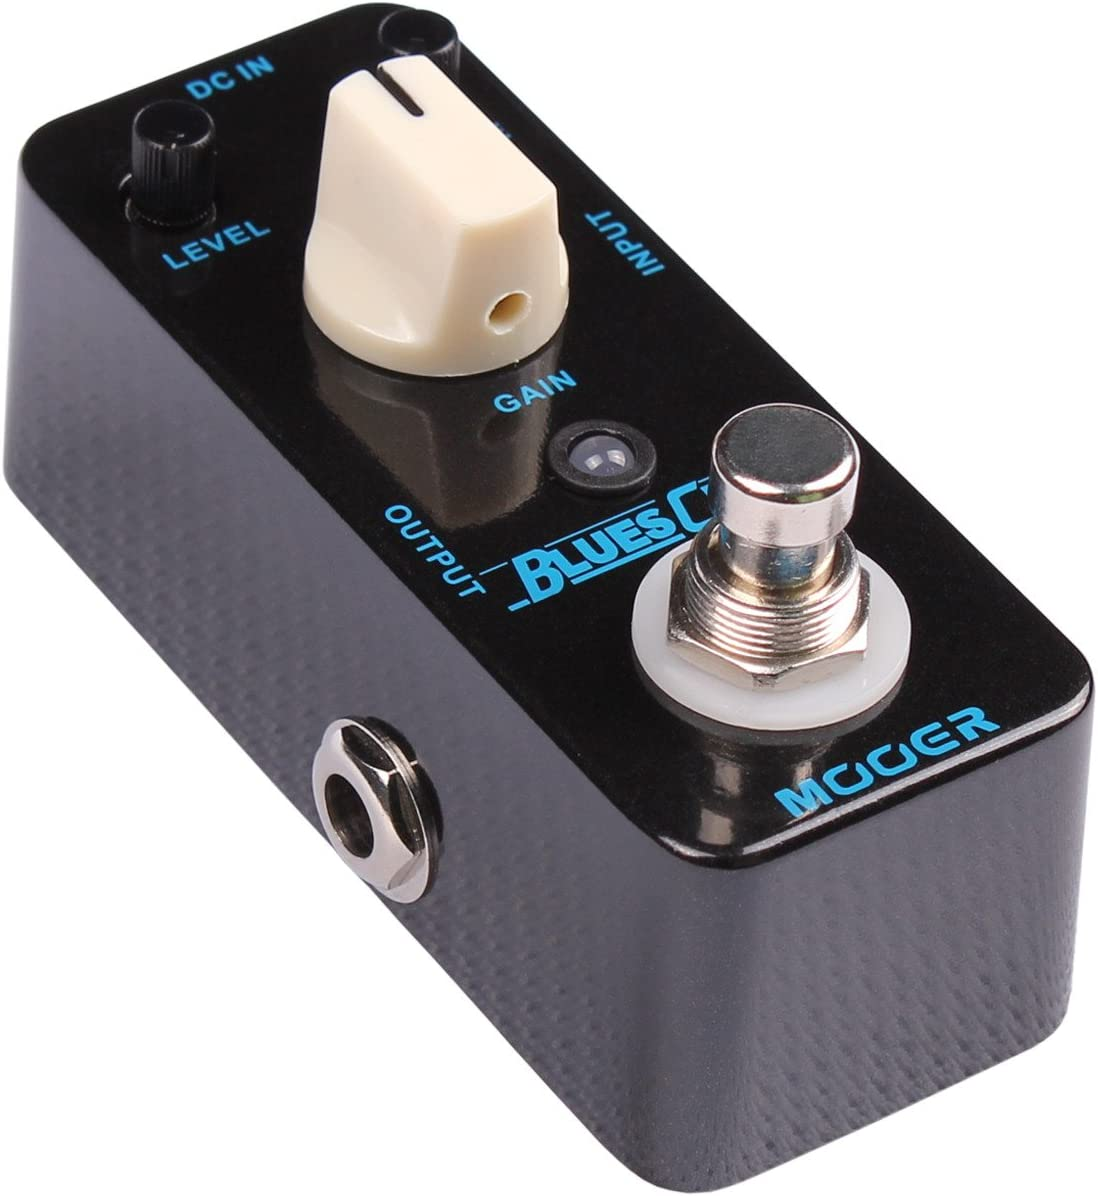 Mooer Box Pitch Pedal Blues Crab Overdrive